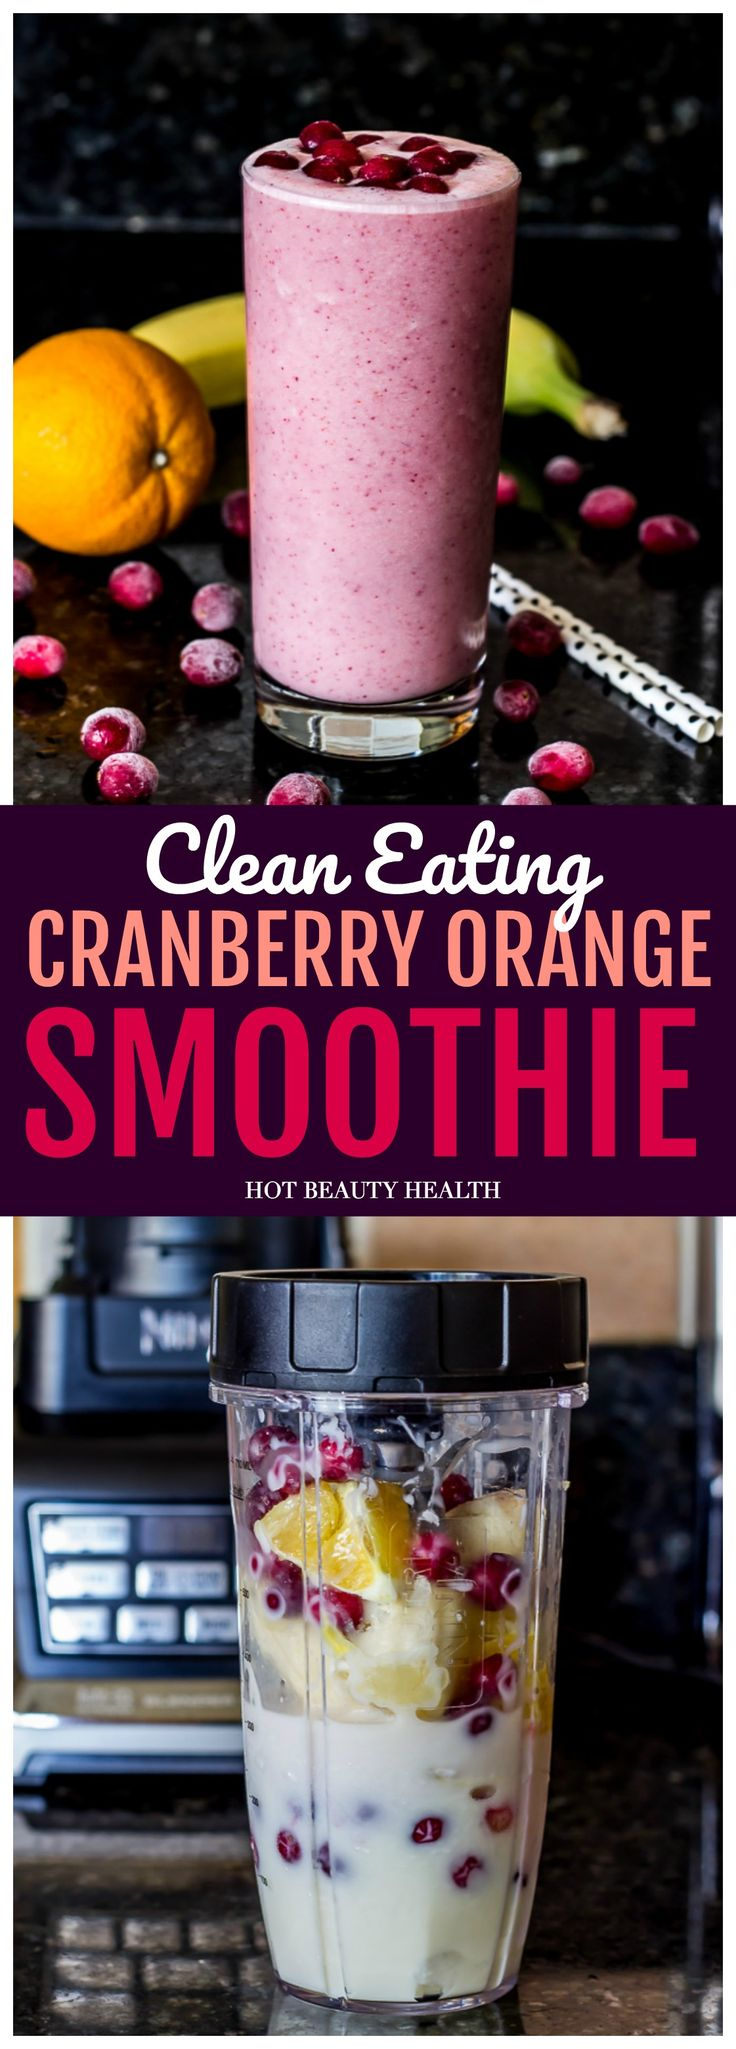 A Clean Eating Cranberry Orange Banana Smoothie that's anti-oxidant rich and loaded with Vitamin C. It's the perfect fall and winter drink that you can enjoy over and over again. Click pin for recipe!